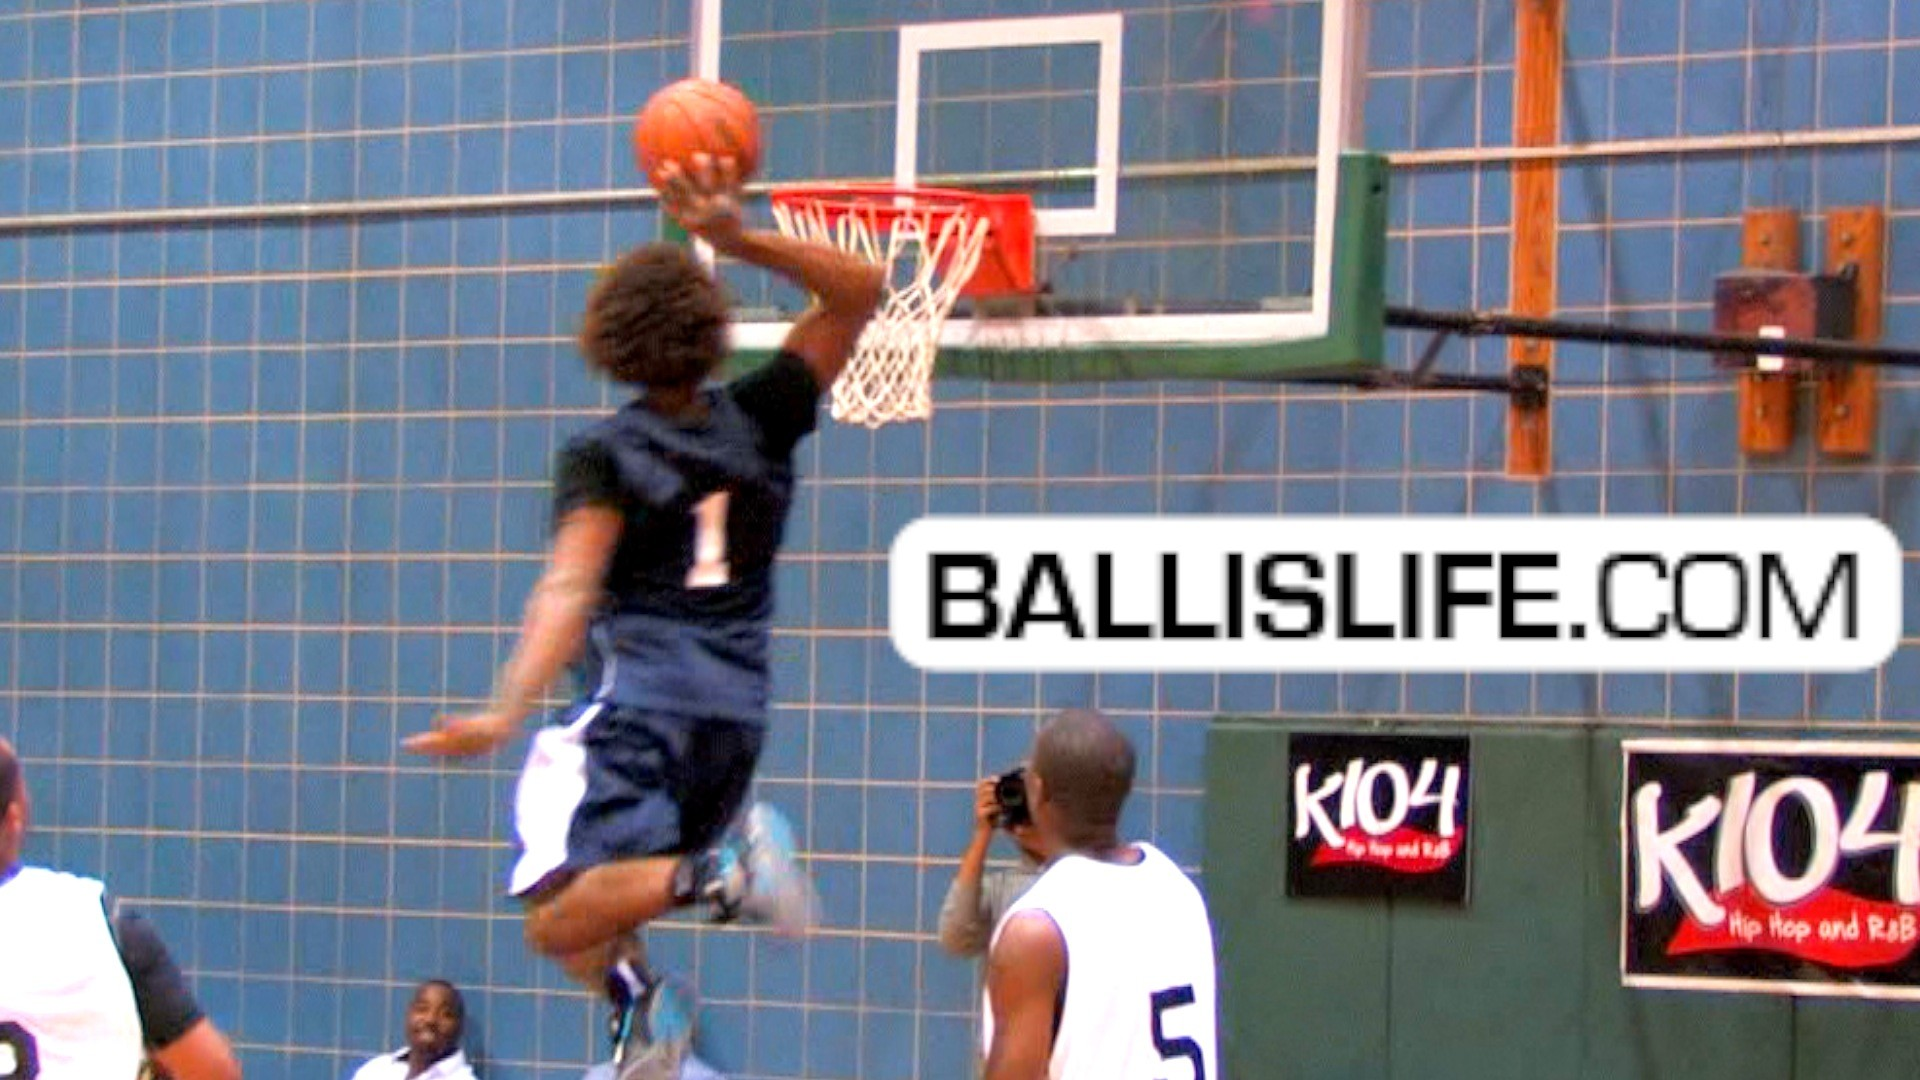 Top Plays From Josh Howard Celebrity Game   Nick Young & KD Go OFF!  Ballislife …